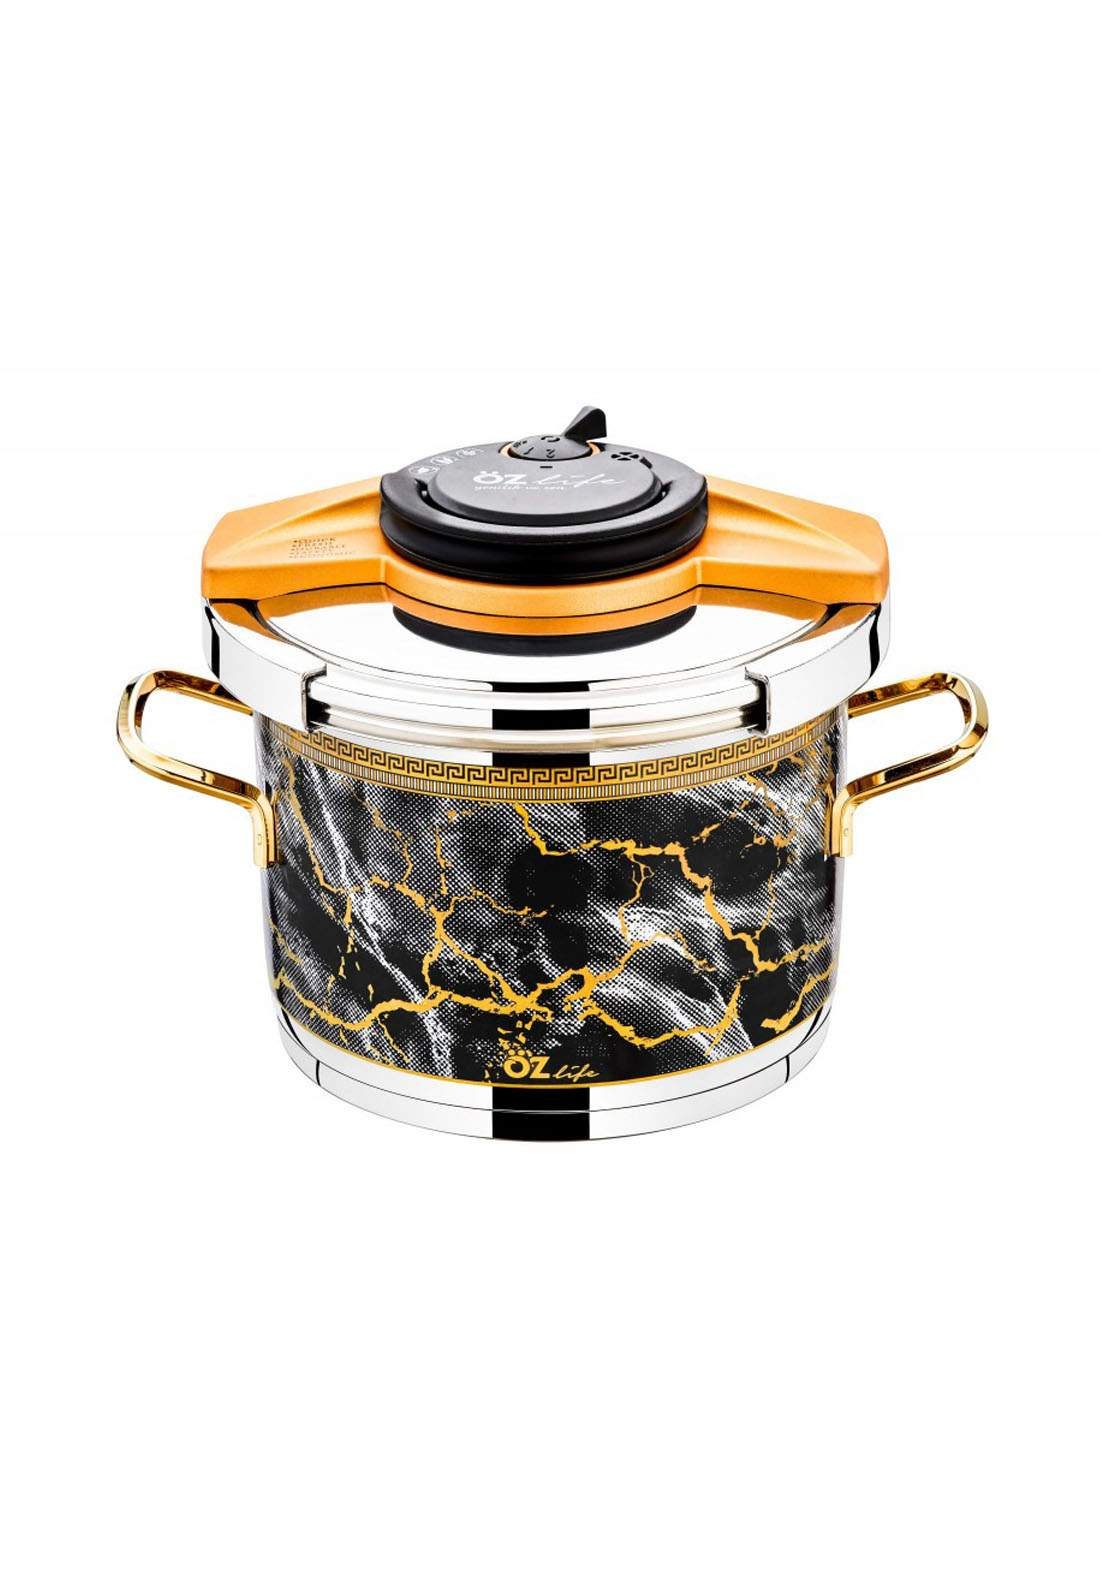 Ozlife Pressure Cooker Decorated Yellow 2 Piece  قدر ضغط